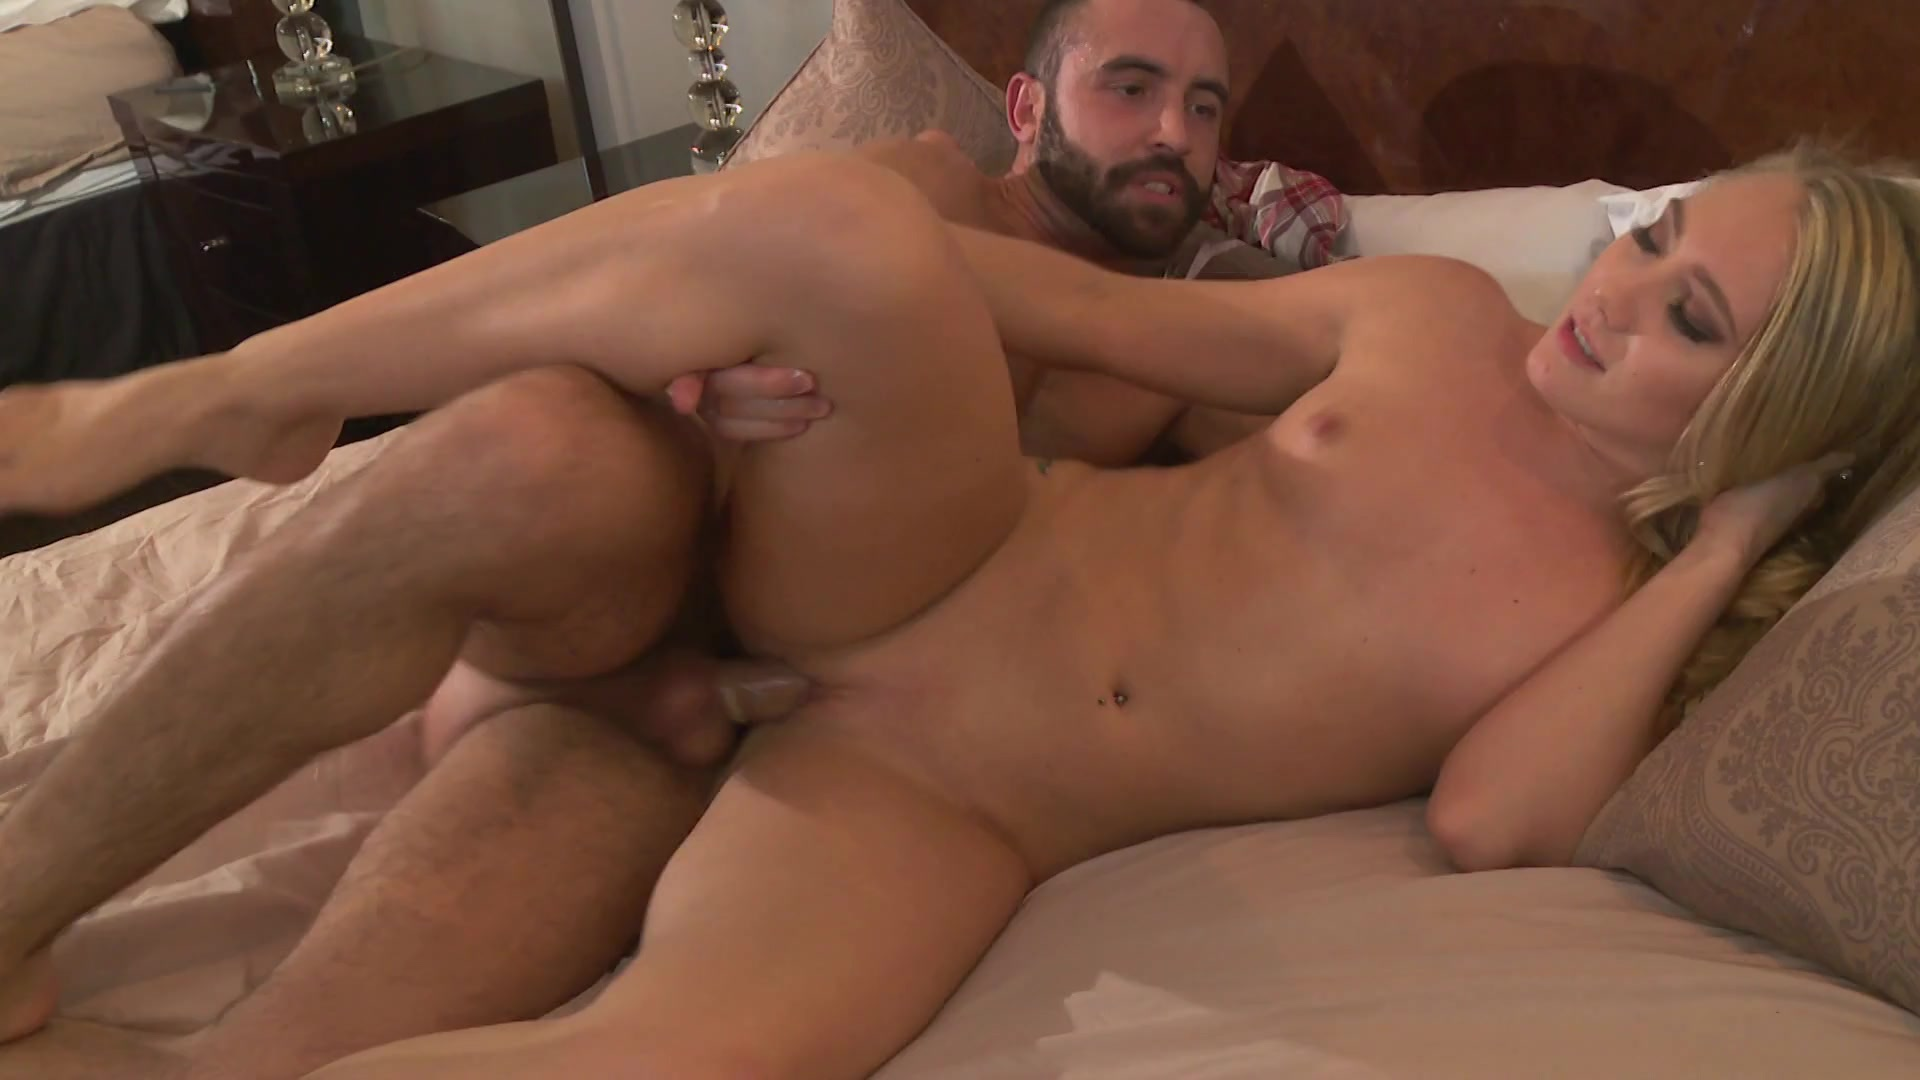 Getting Cozy - Wicked Passions